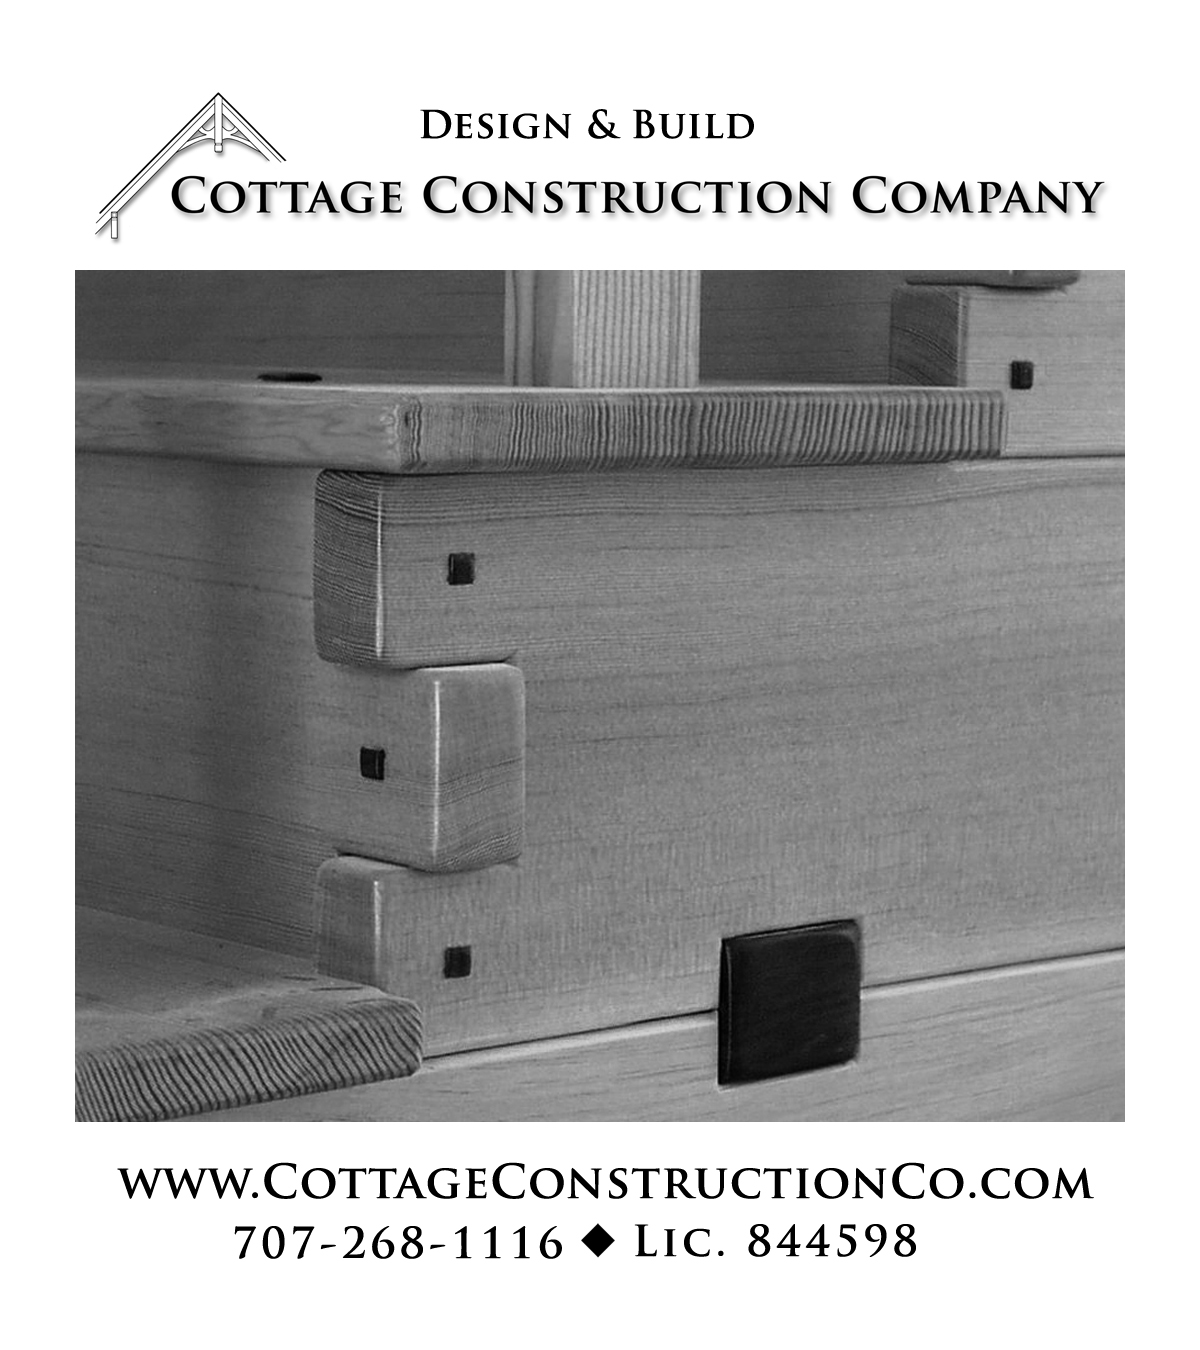 Cottage Construction